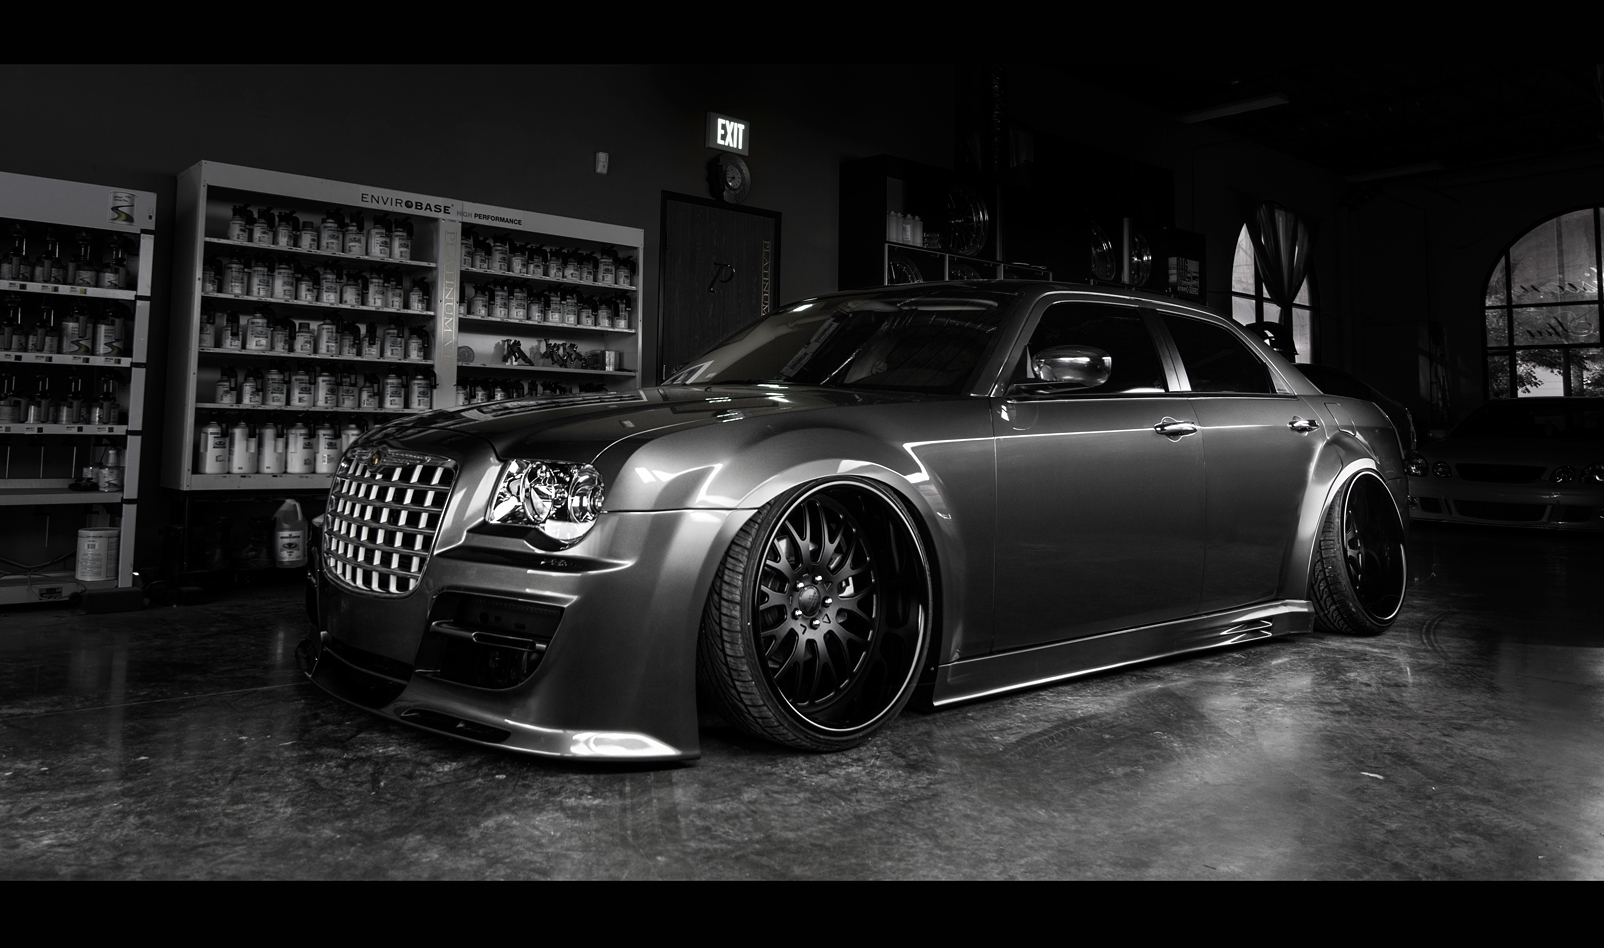 rims for chrysler 300c massive savings on chrysler wheels. Black Bedroom Furniture Sets. Home Design Ideas